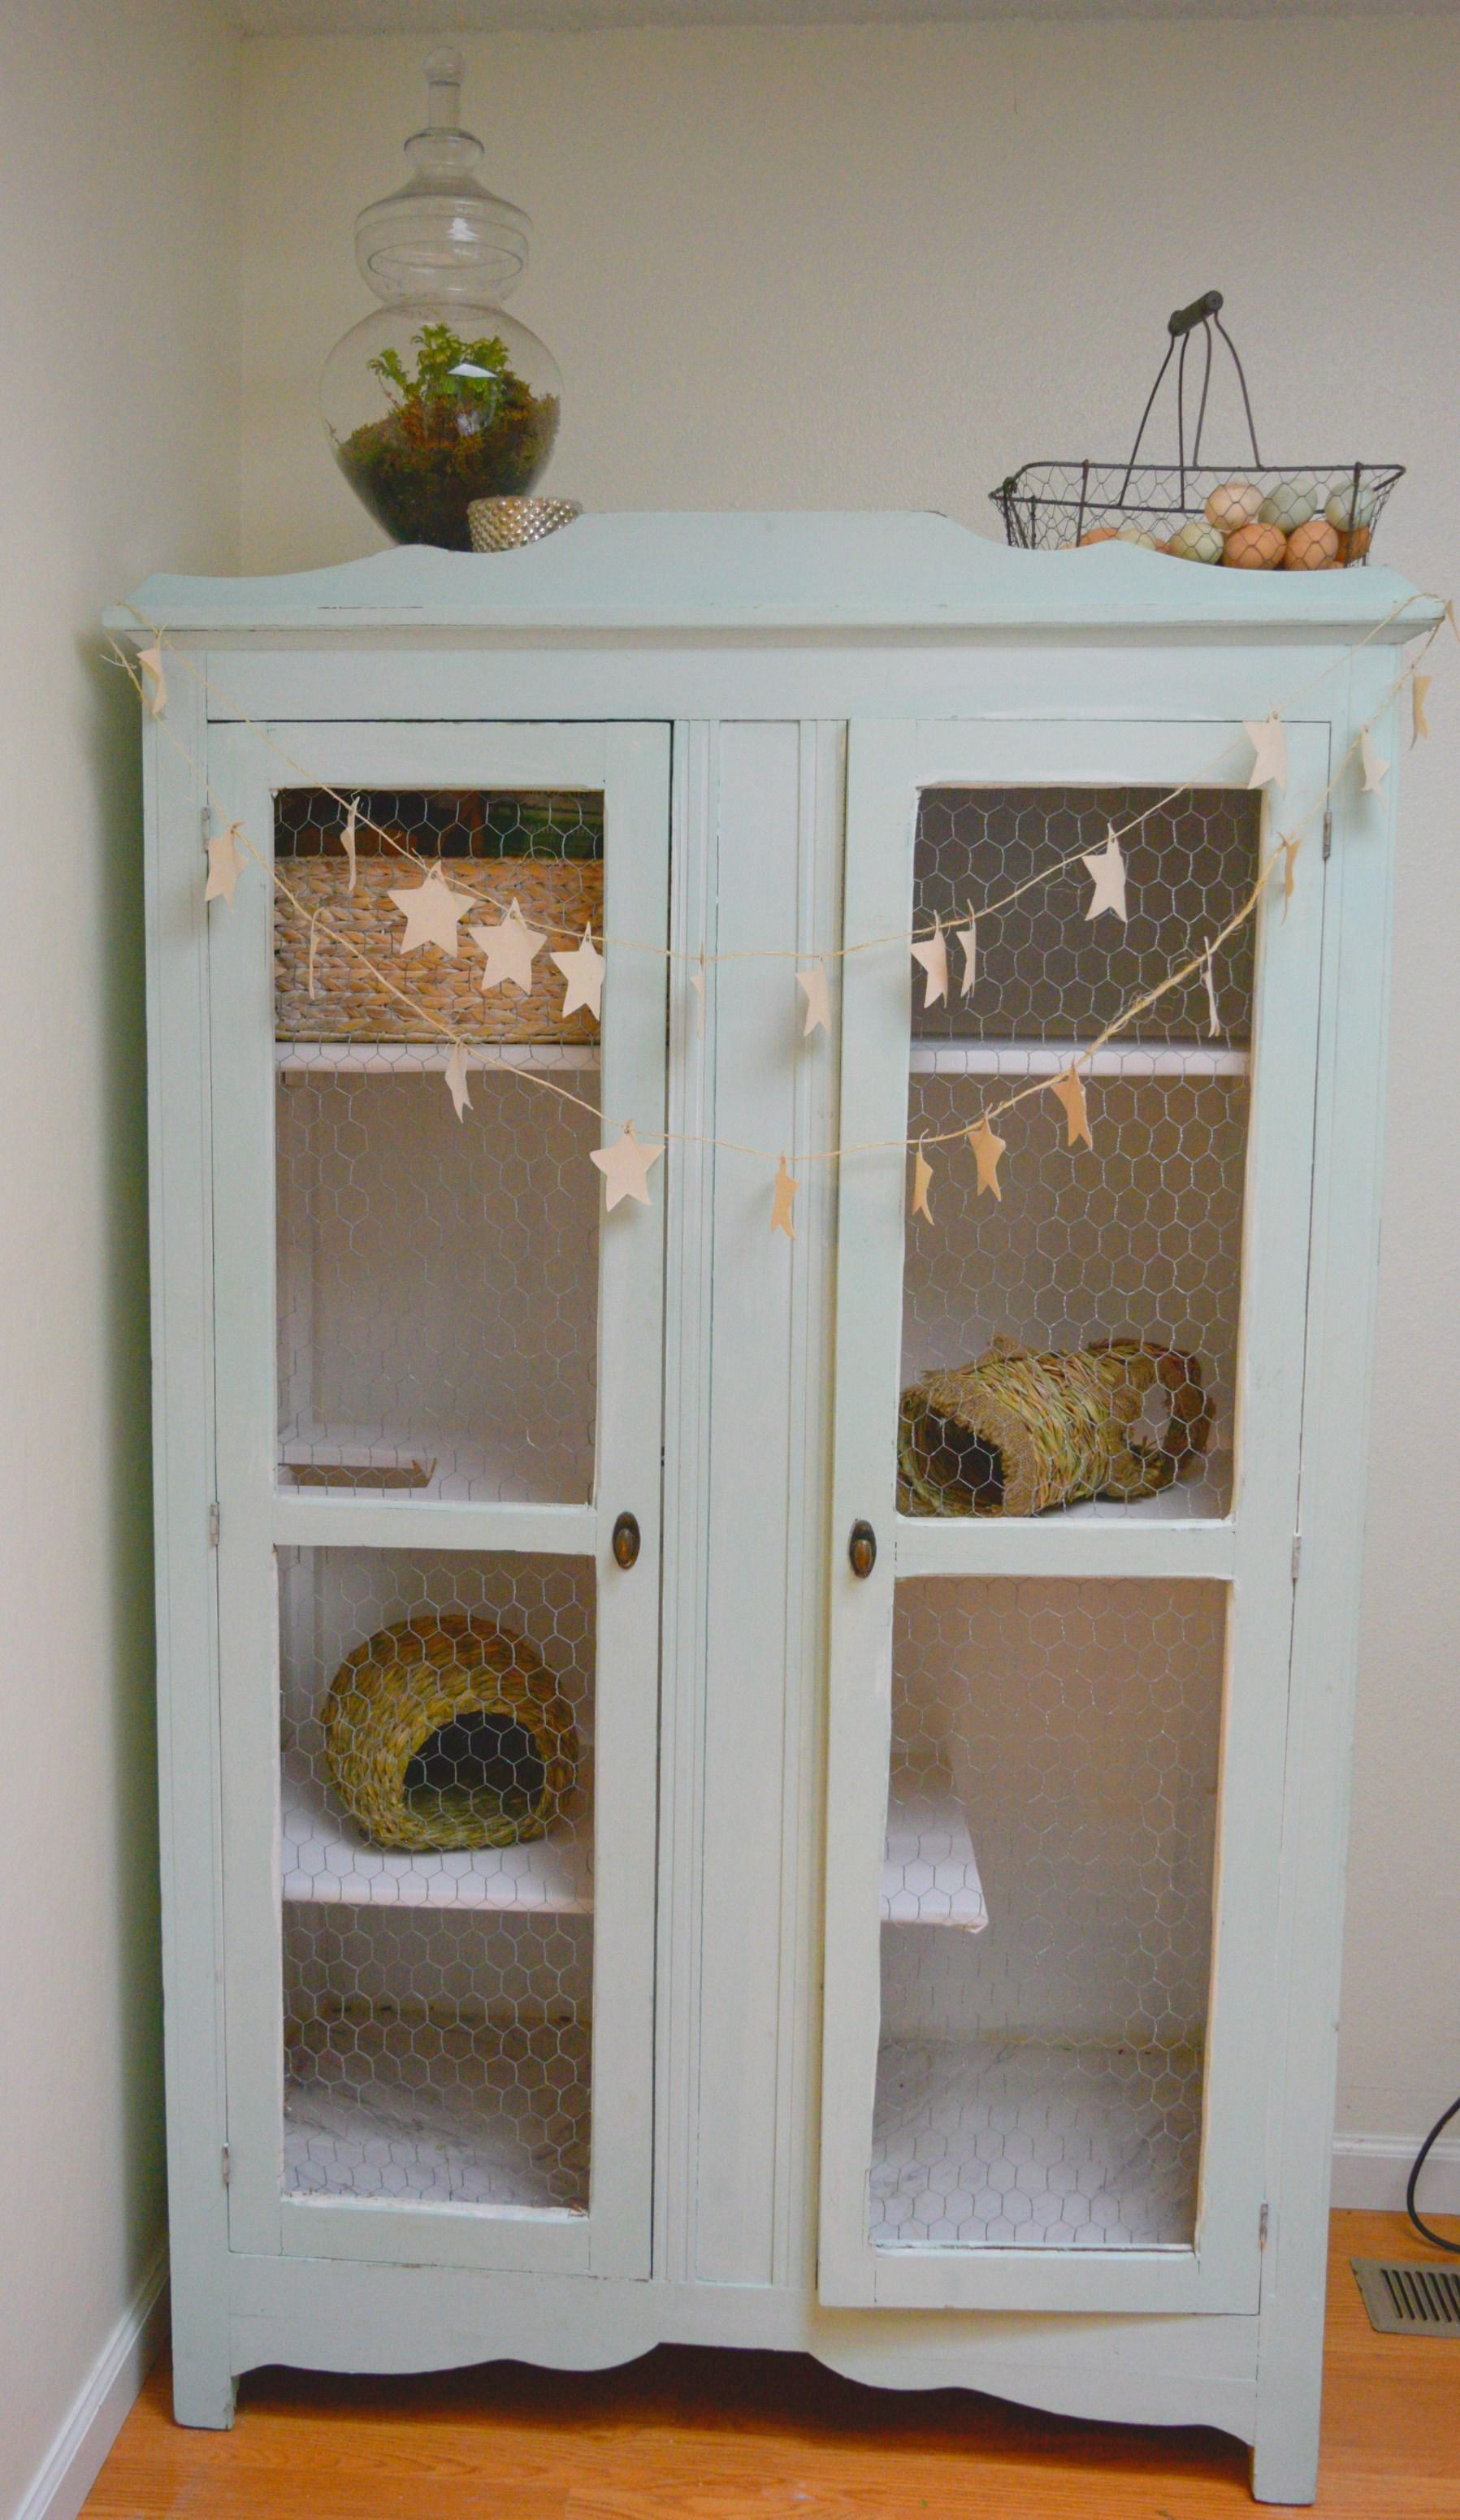 Rabbit Runn Designs A Kitchen Makeover: DIY Armoire Rabbit Hutch Vintage Armoire Turned Indoor